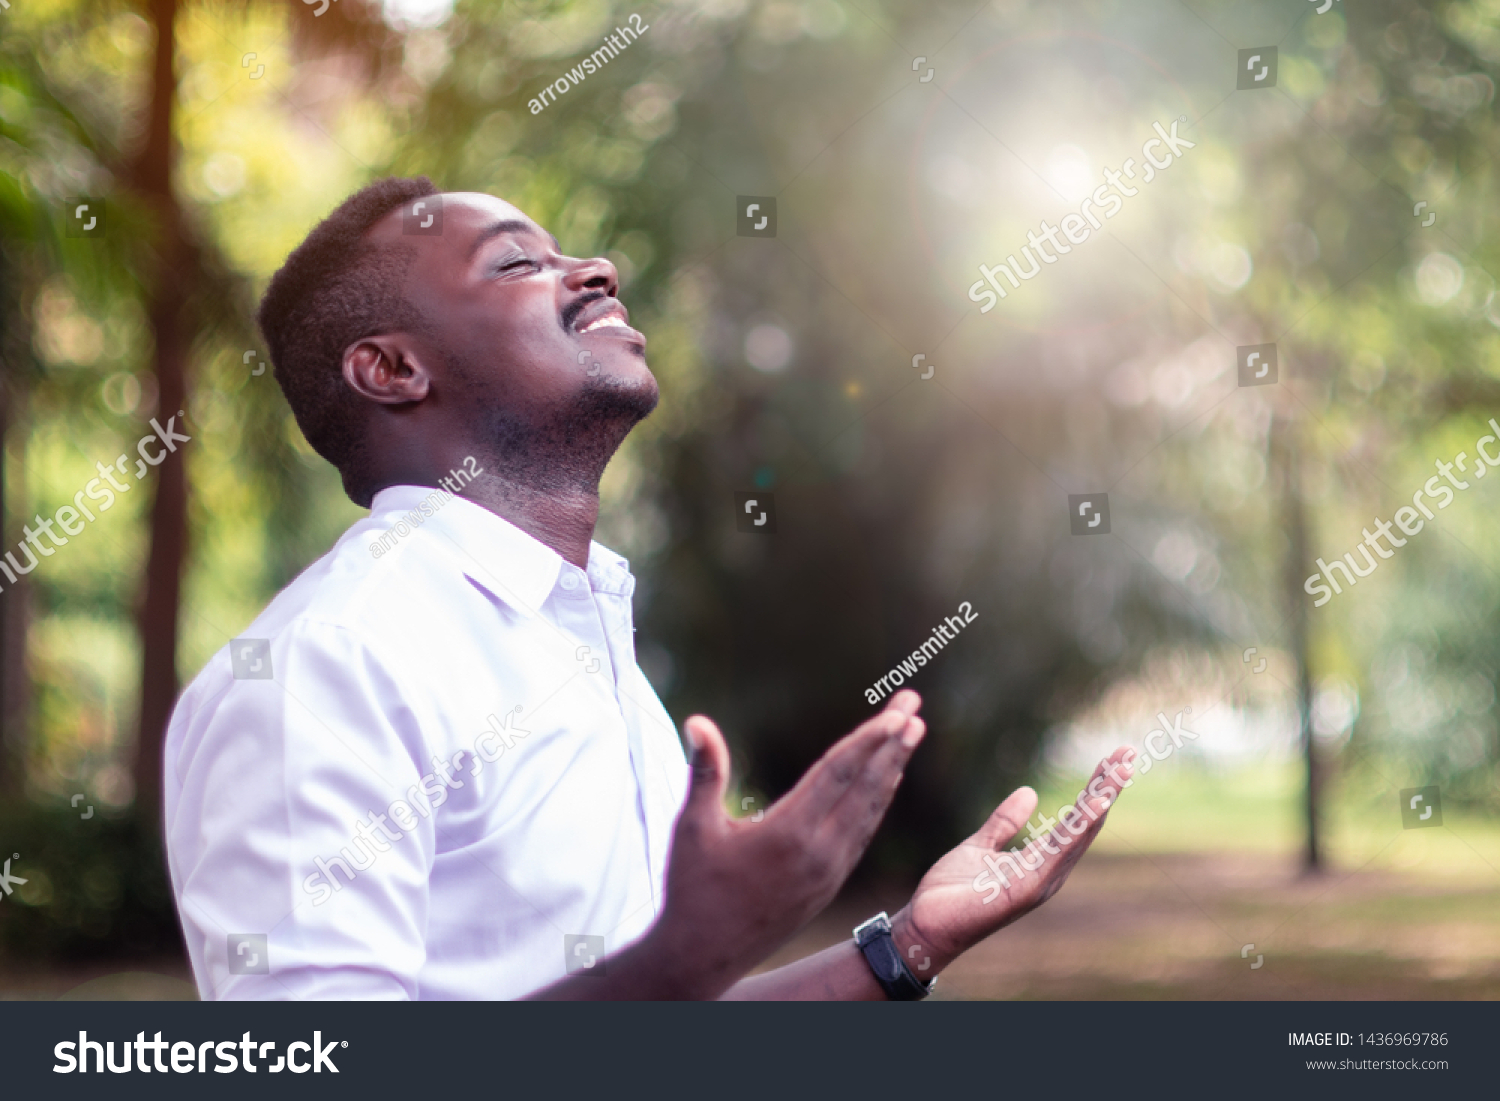 African man praying for thank god with light flare in the green nature #1436969786